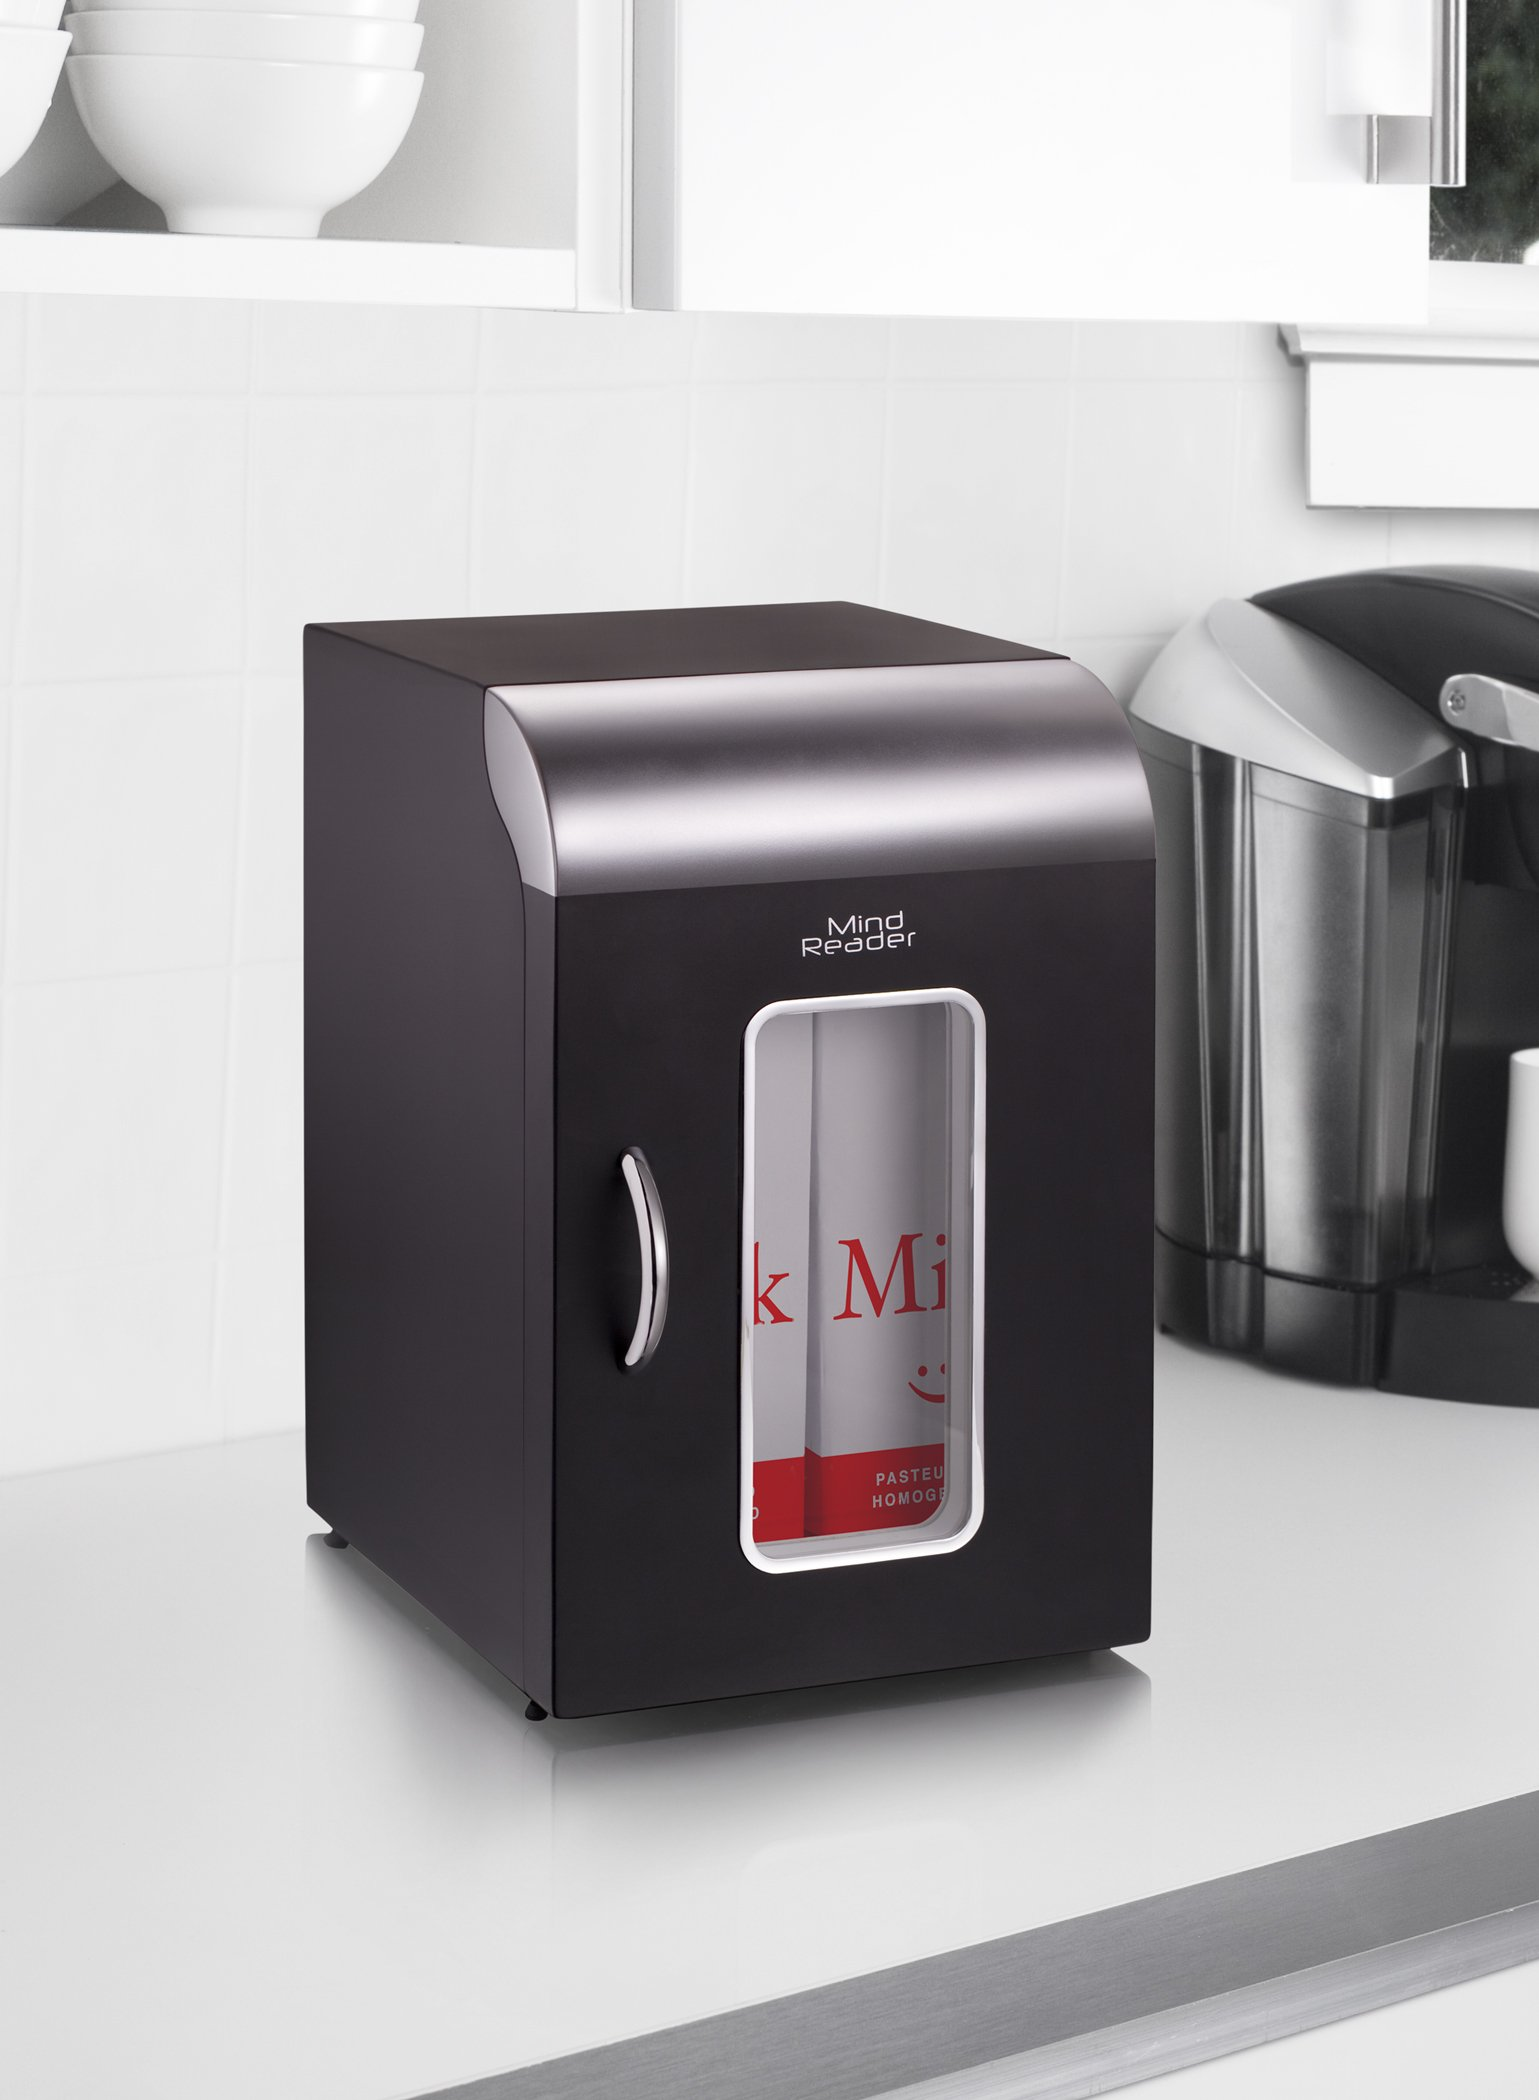 Mind Reader Compact Portable Personal Mini Fridge, For Home, Office, Six Can Capacity, Holds 2 Quarts of Milk, Black by Mind Reader (Image #7)